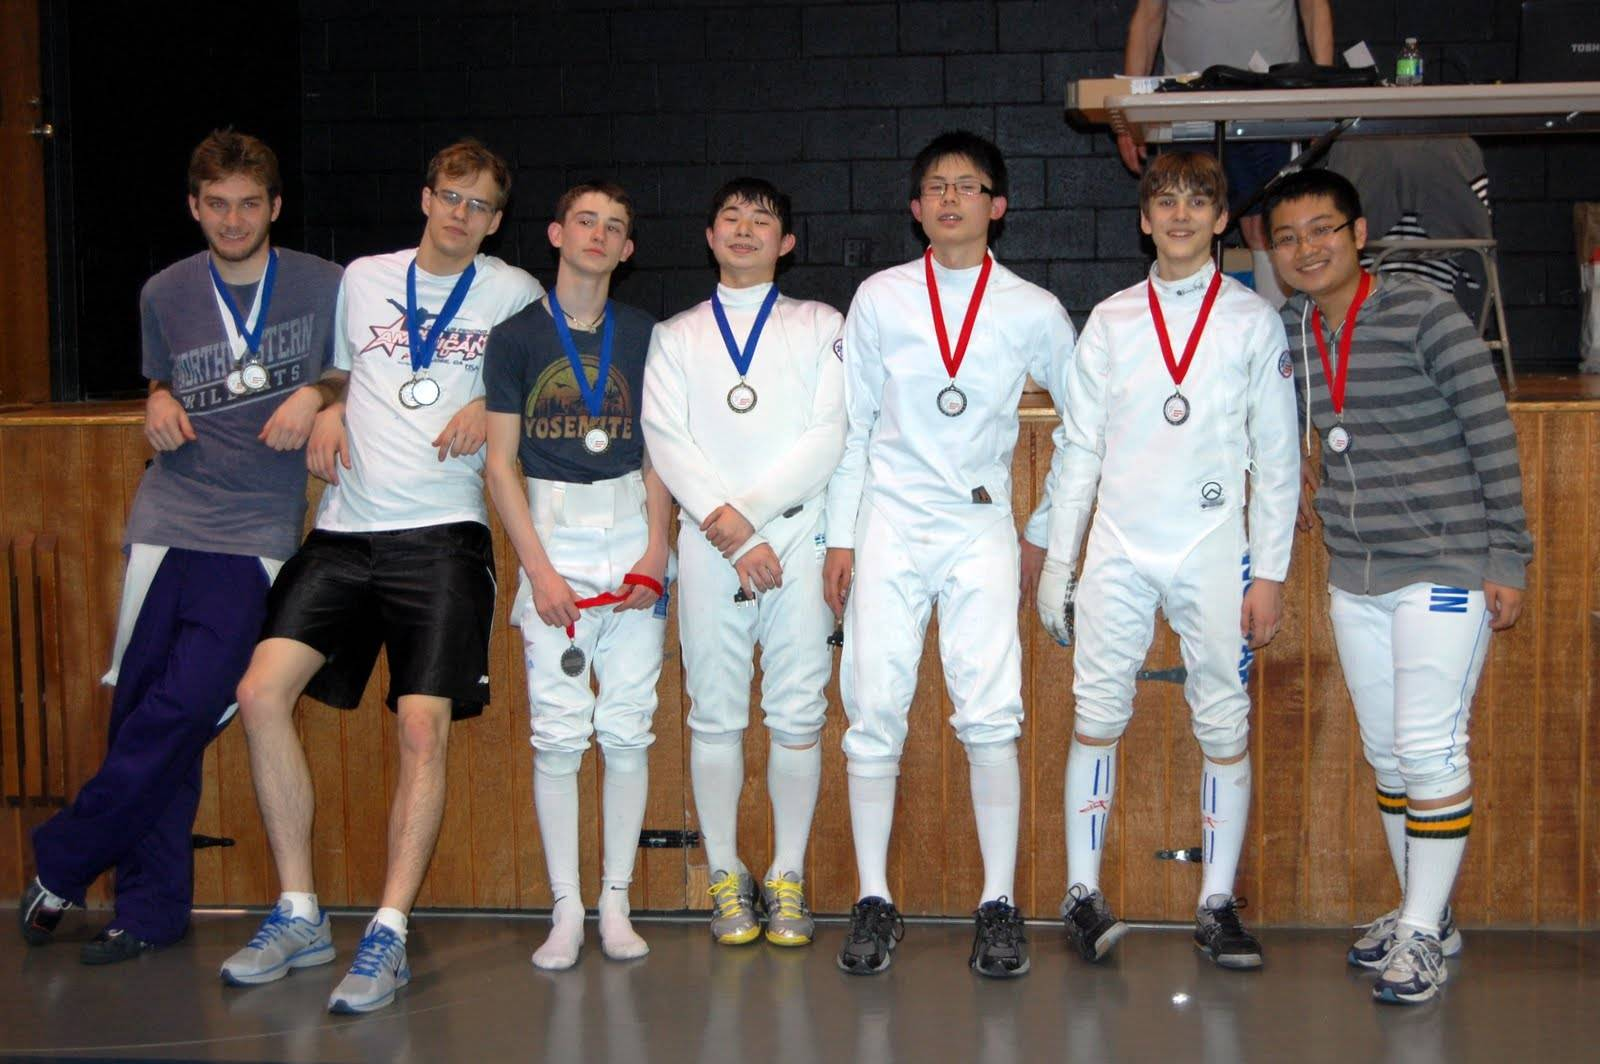 IFC Fencers, and their medals, second from left Maciek Zmyslowski, then Gabe Weininger, Sasha Heber, Zimo Zhu, Jakub Nowak and Andrew Jin.